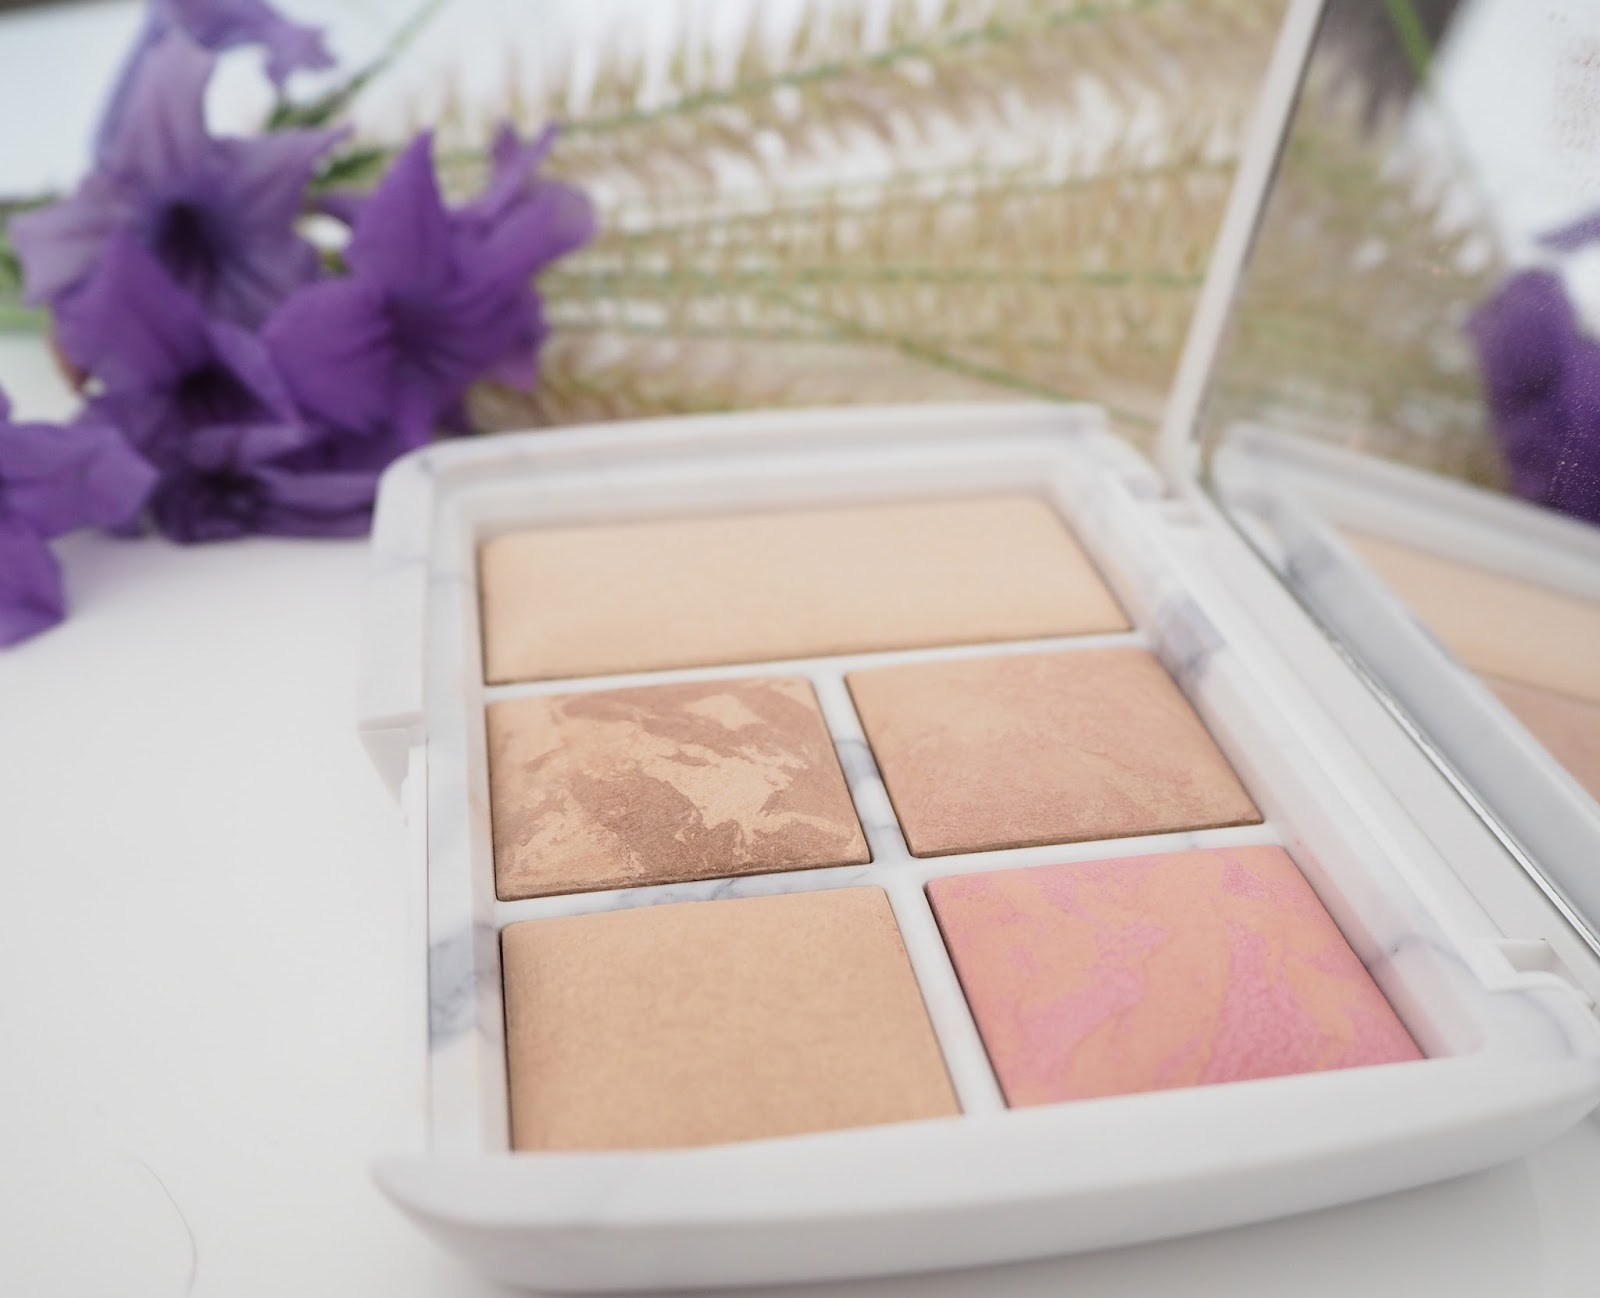 Hourglass Ambient Lighting Edit in Surreal Light